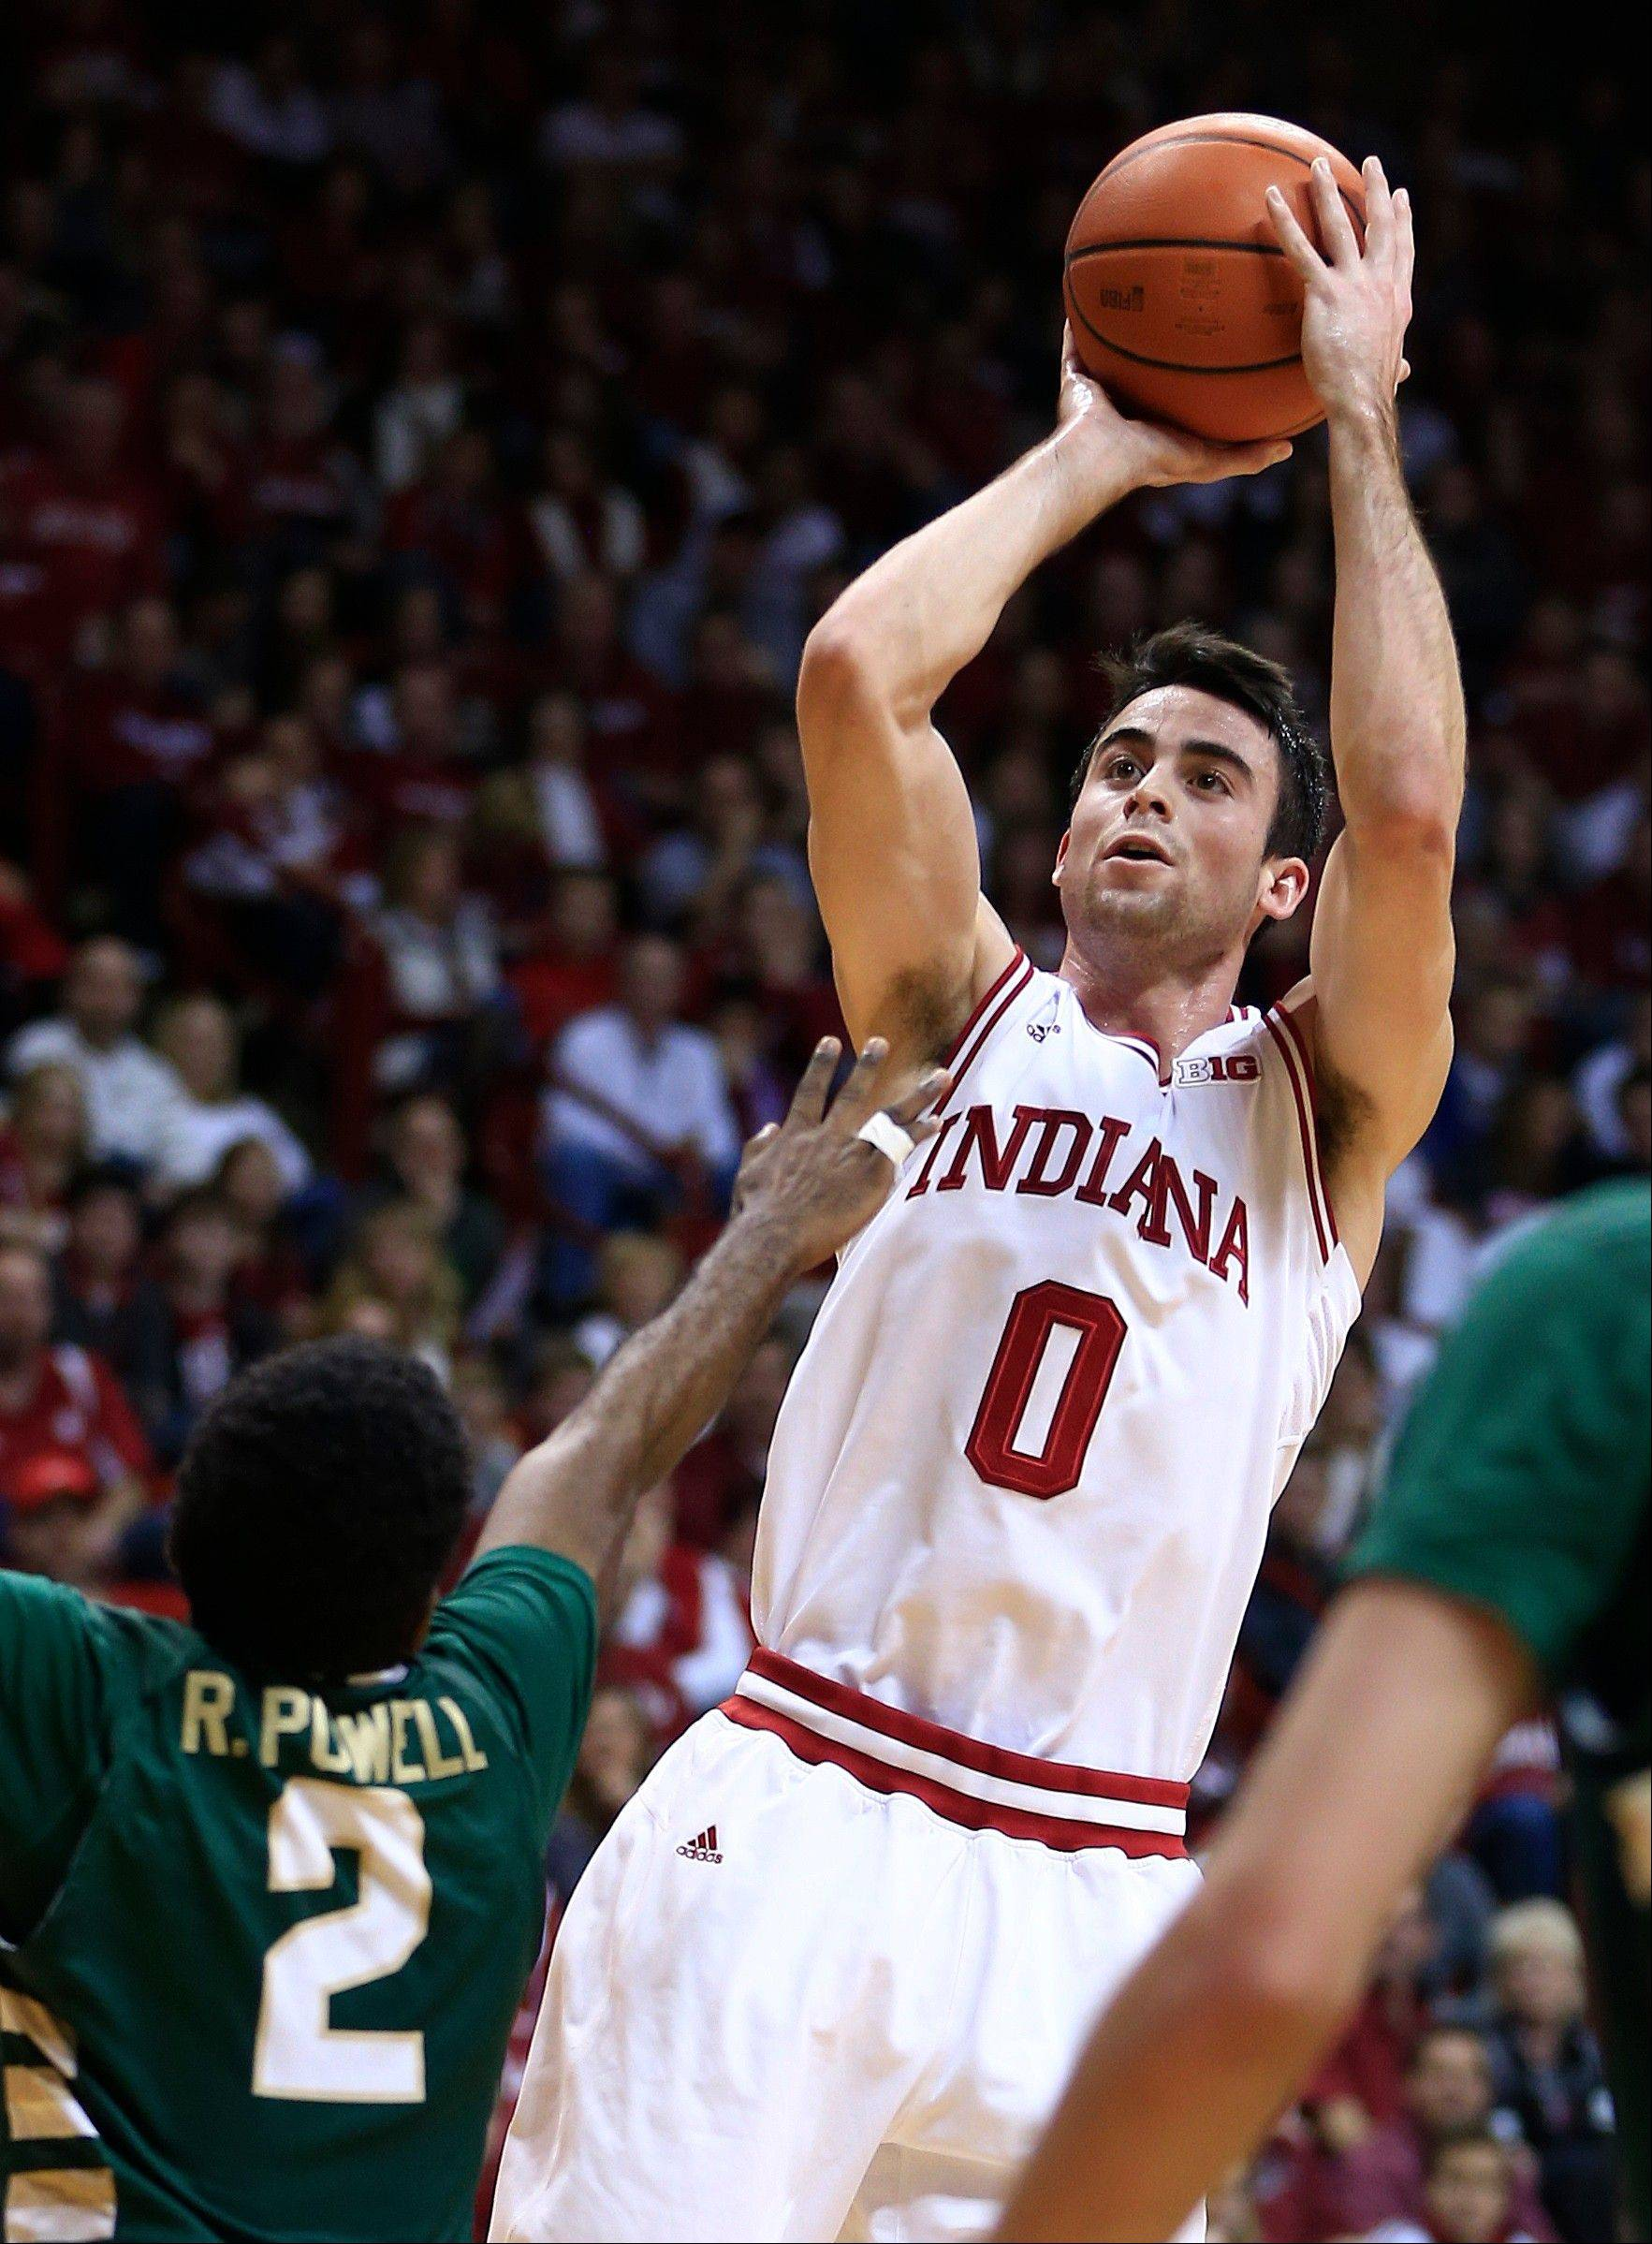 Indiana�s Will Sheehey puts up a shot against Jacksonville�s Russell Powell during the second half Friday in Bloomington, Ind.